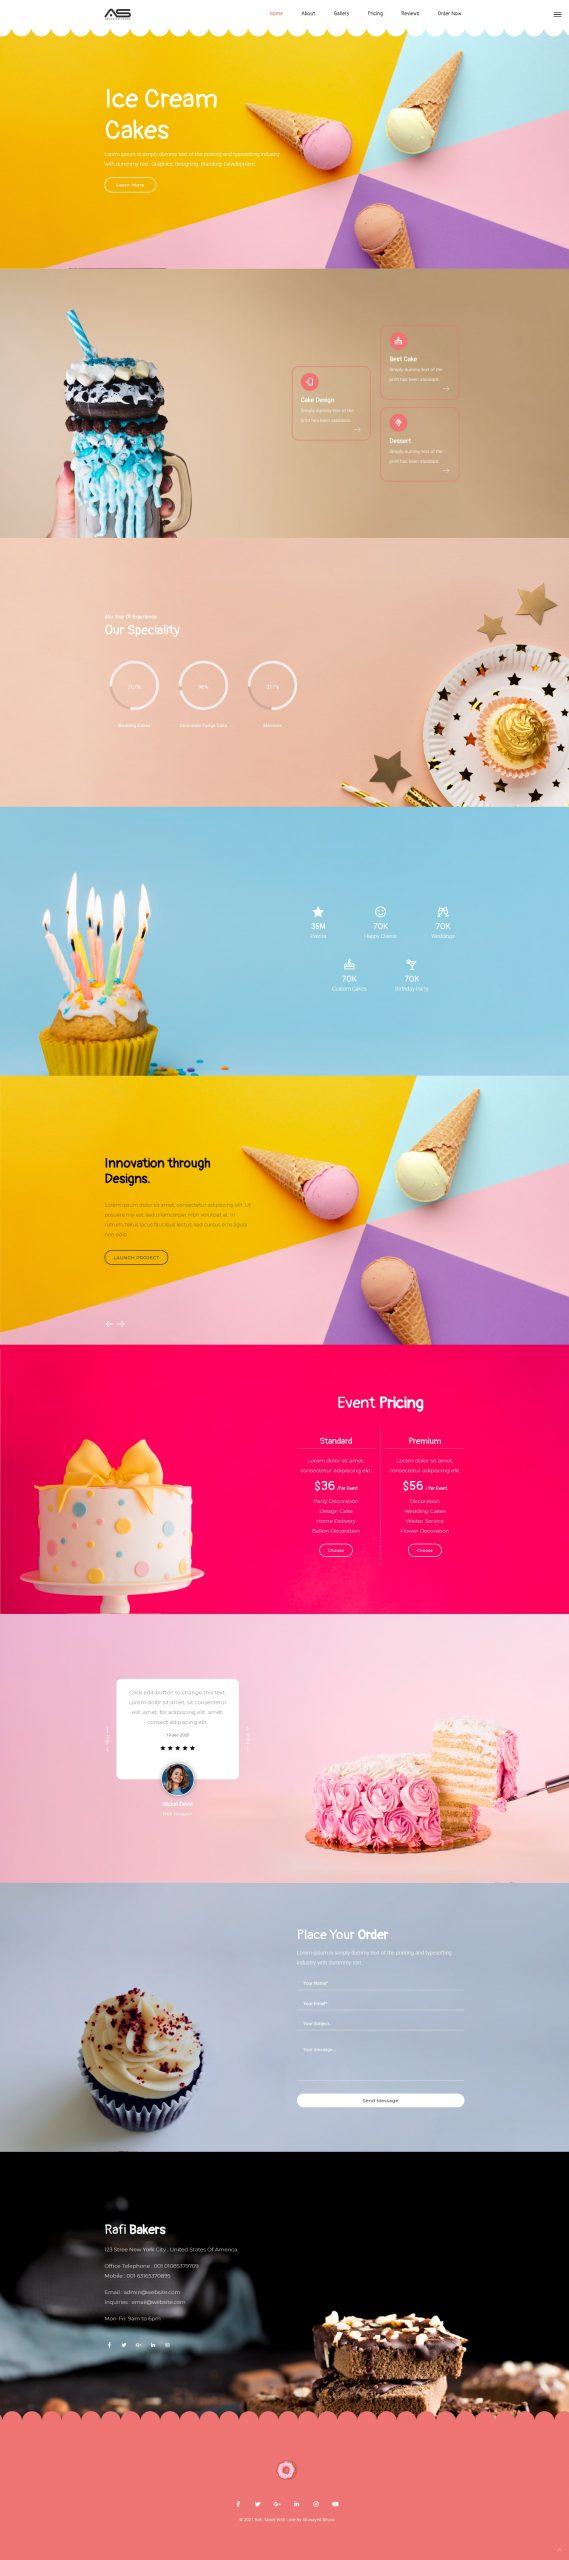 Rafi | Cakes HTML5 Landing Page Template